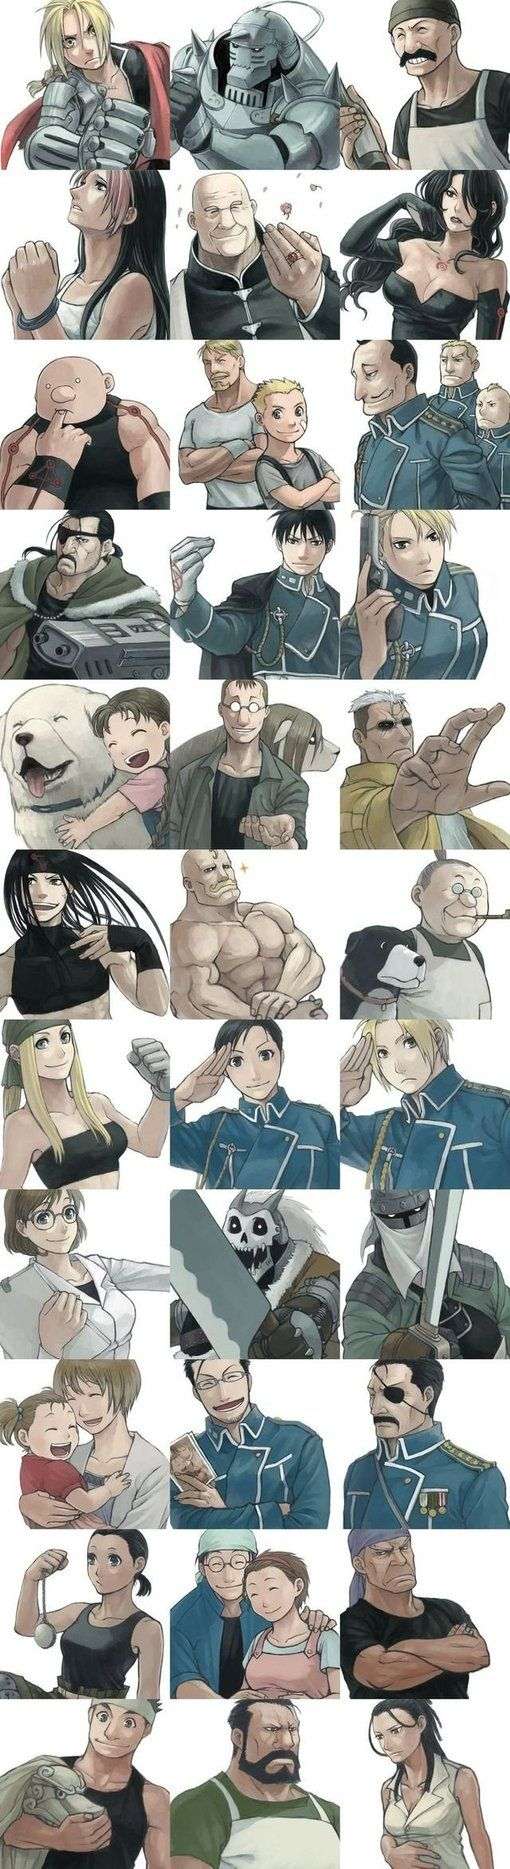 And I believe this approximates about half of the named characters in Fullmetal Alchemist.